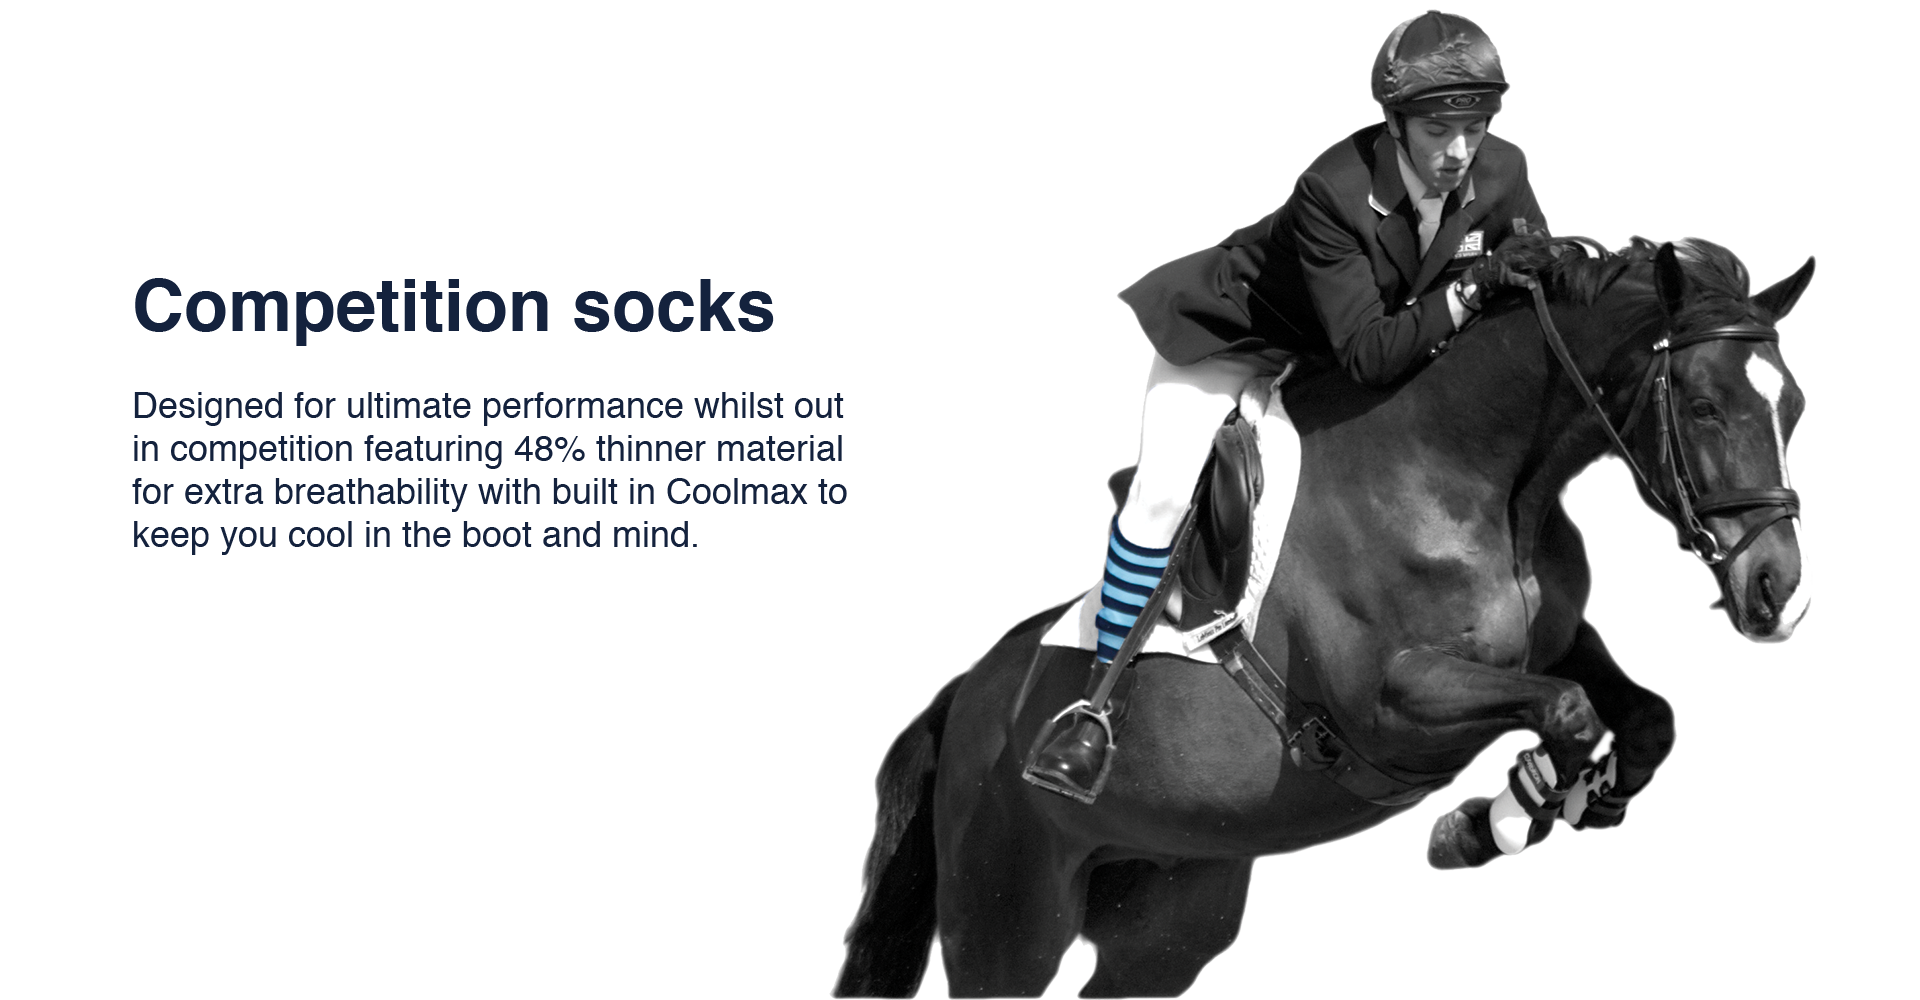 banner-comp-socks.jpg